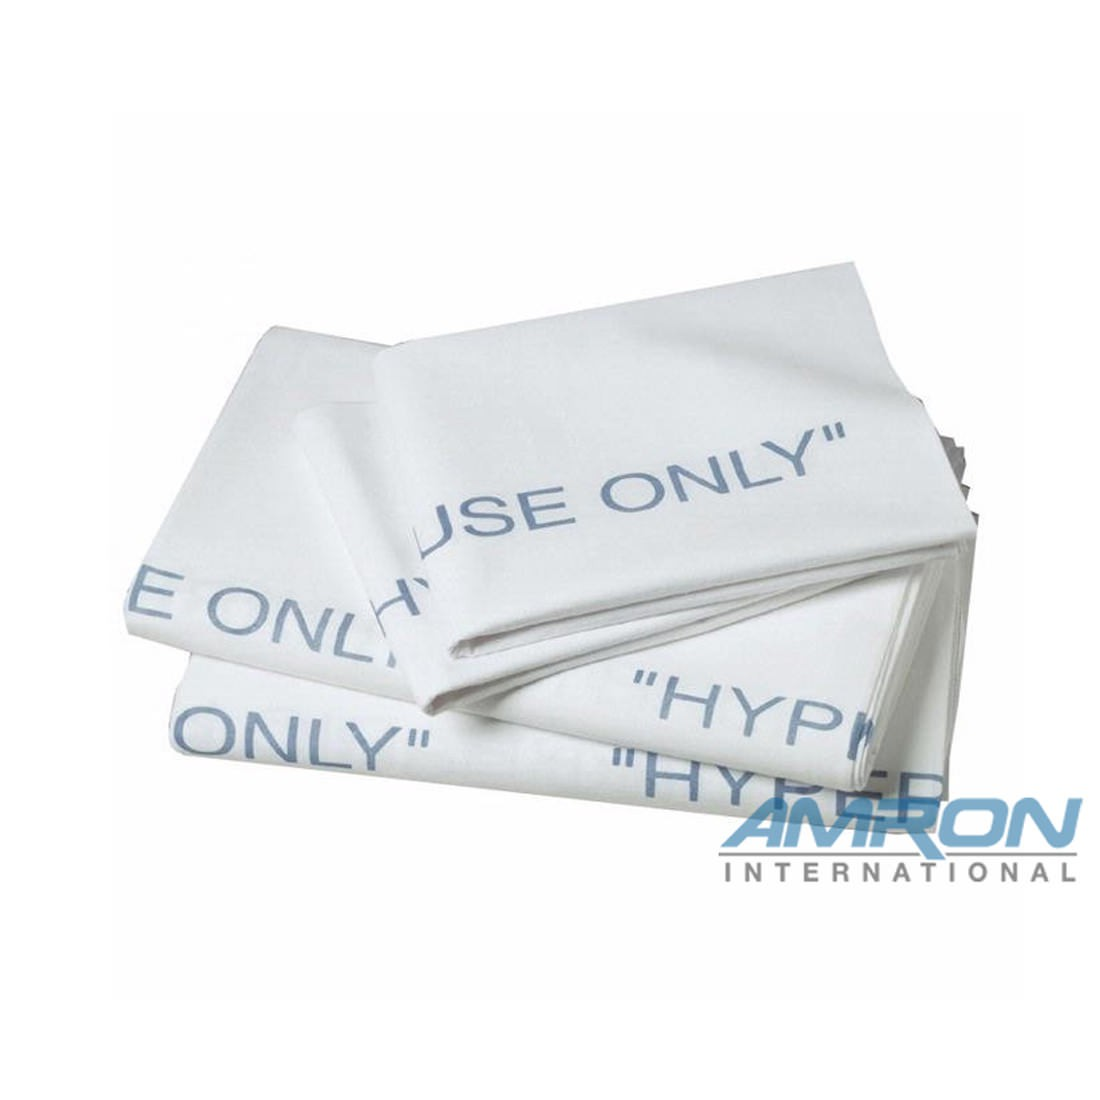 Medline Single Hyperbaric Pillow Case - 100% Cotton - 42 in. x 34 in. MDL-MDT219021-1